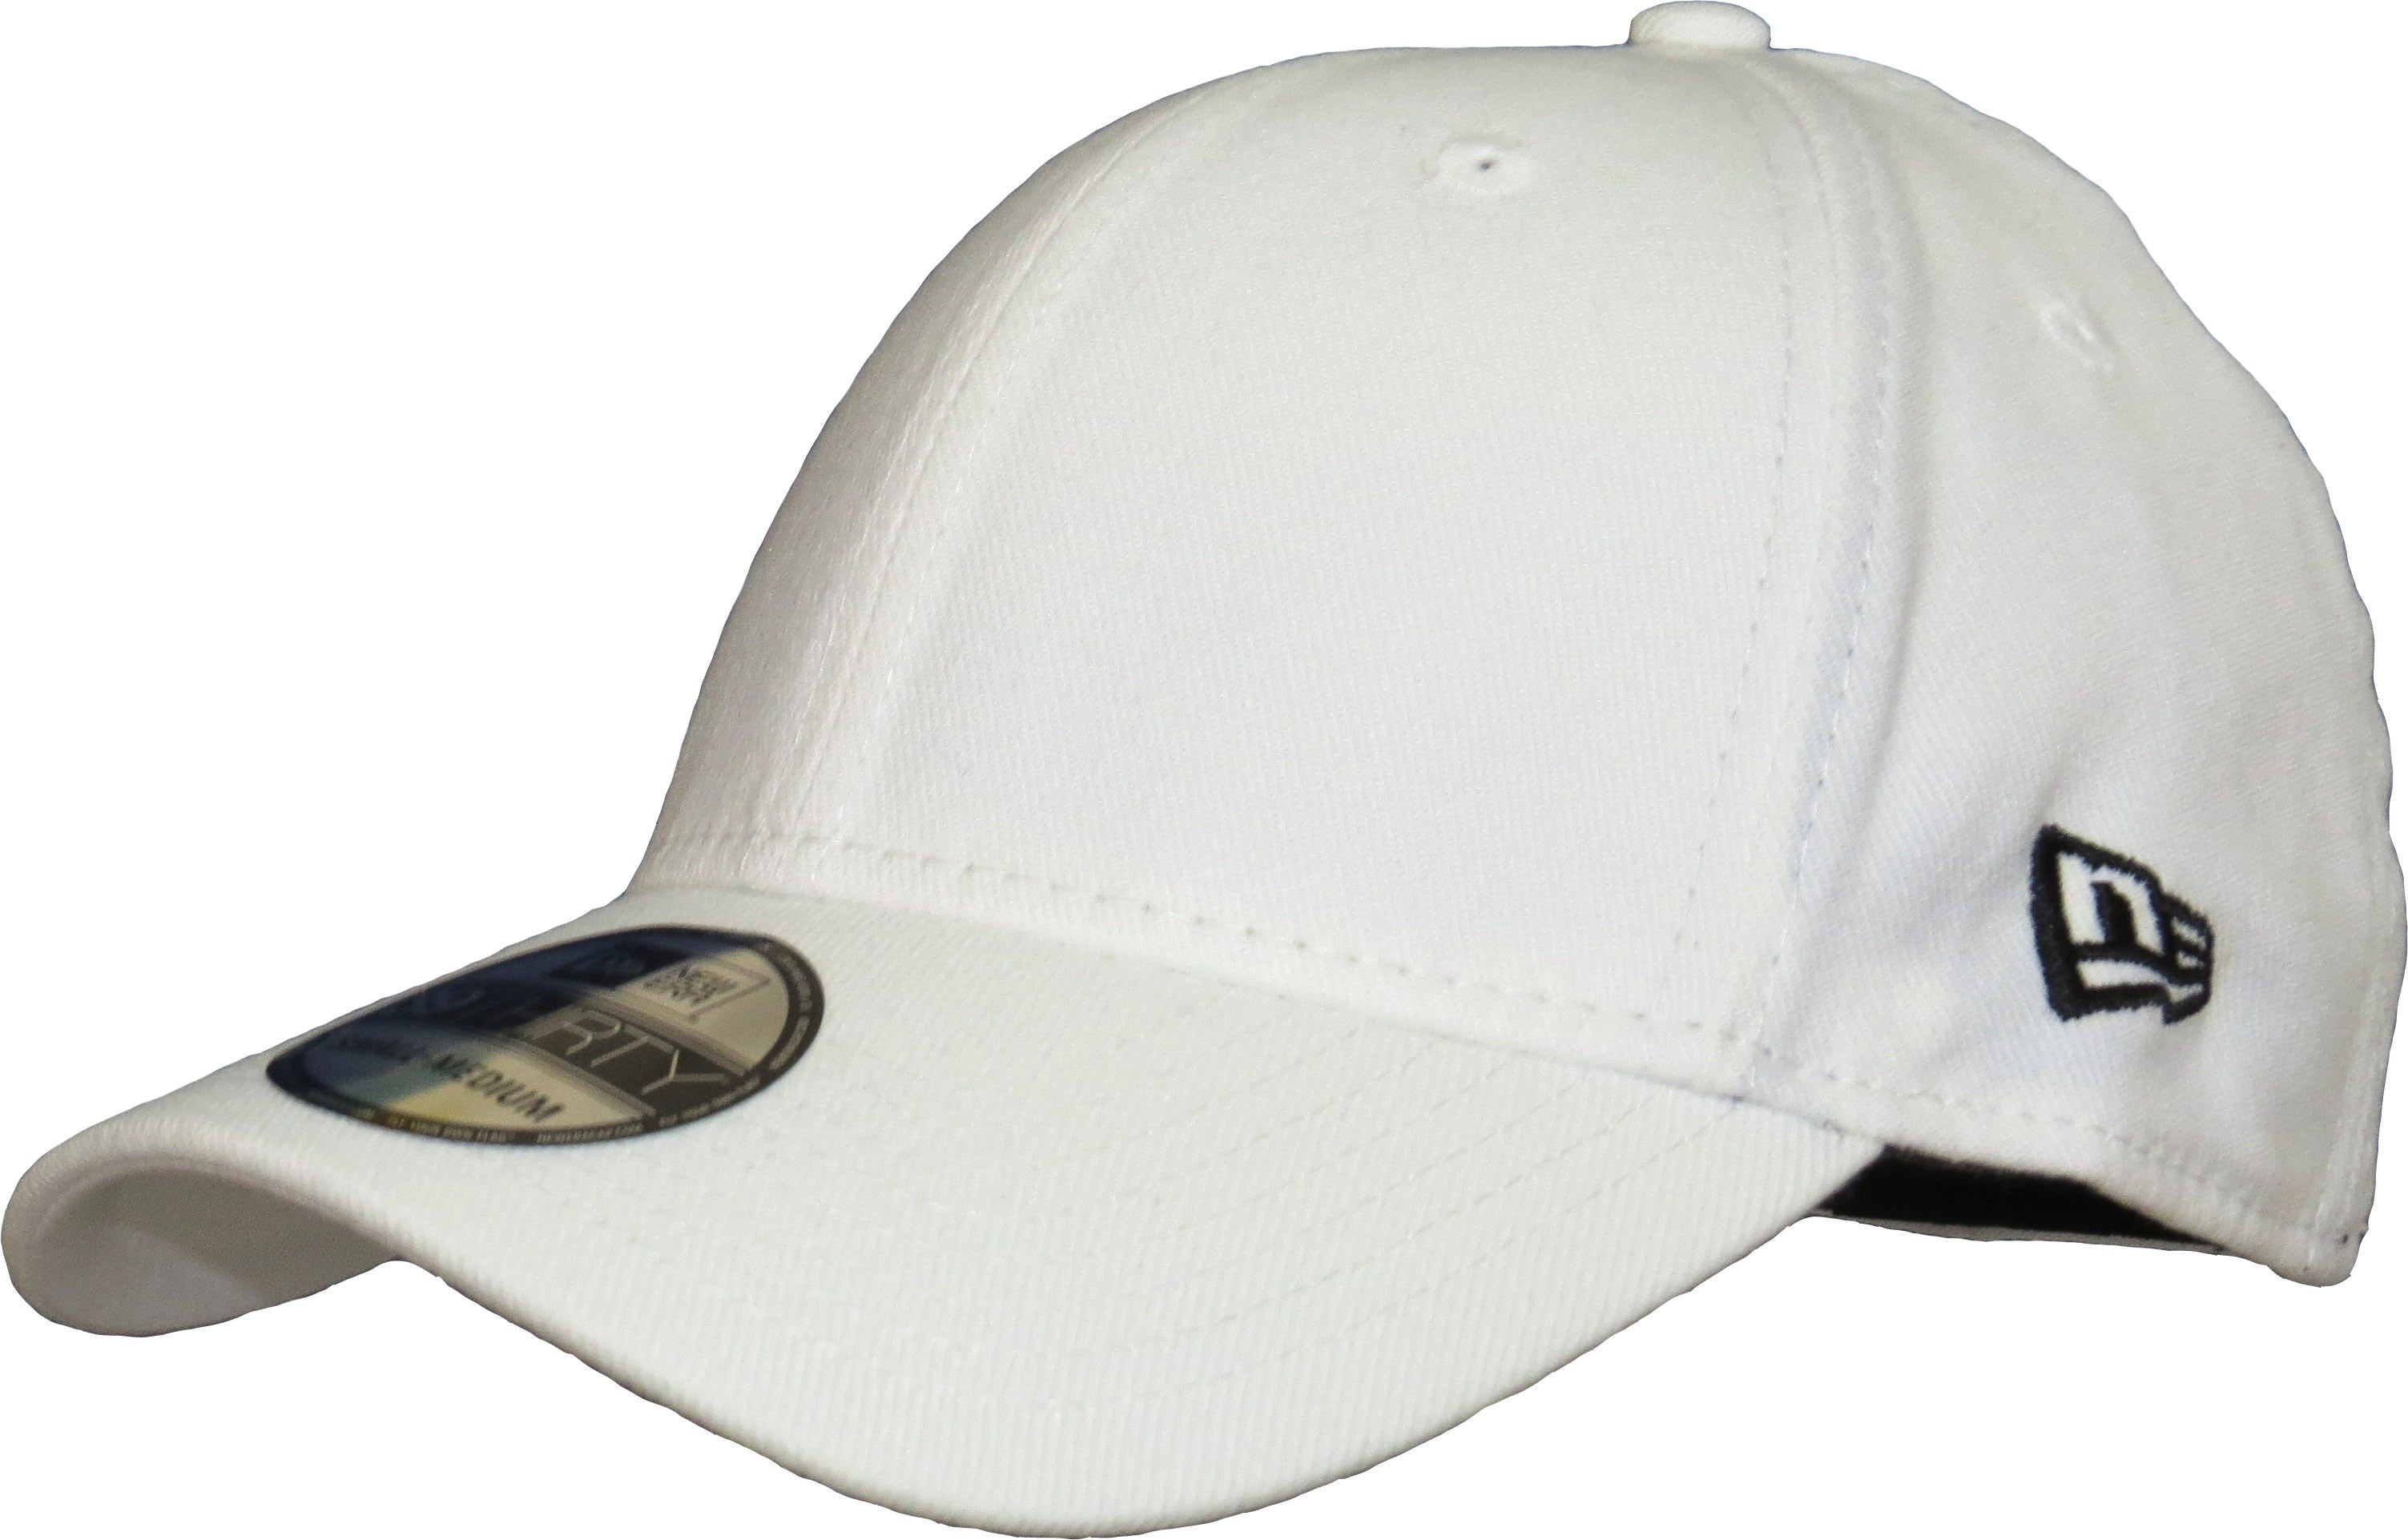 57e66bb3f67 New Era 3930 Classic Curved Peak Stretch Fit Plain White Baseball Cap -  pumpheadgear